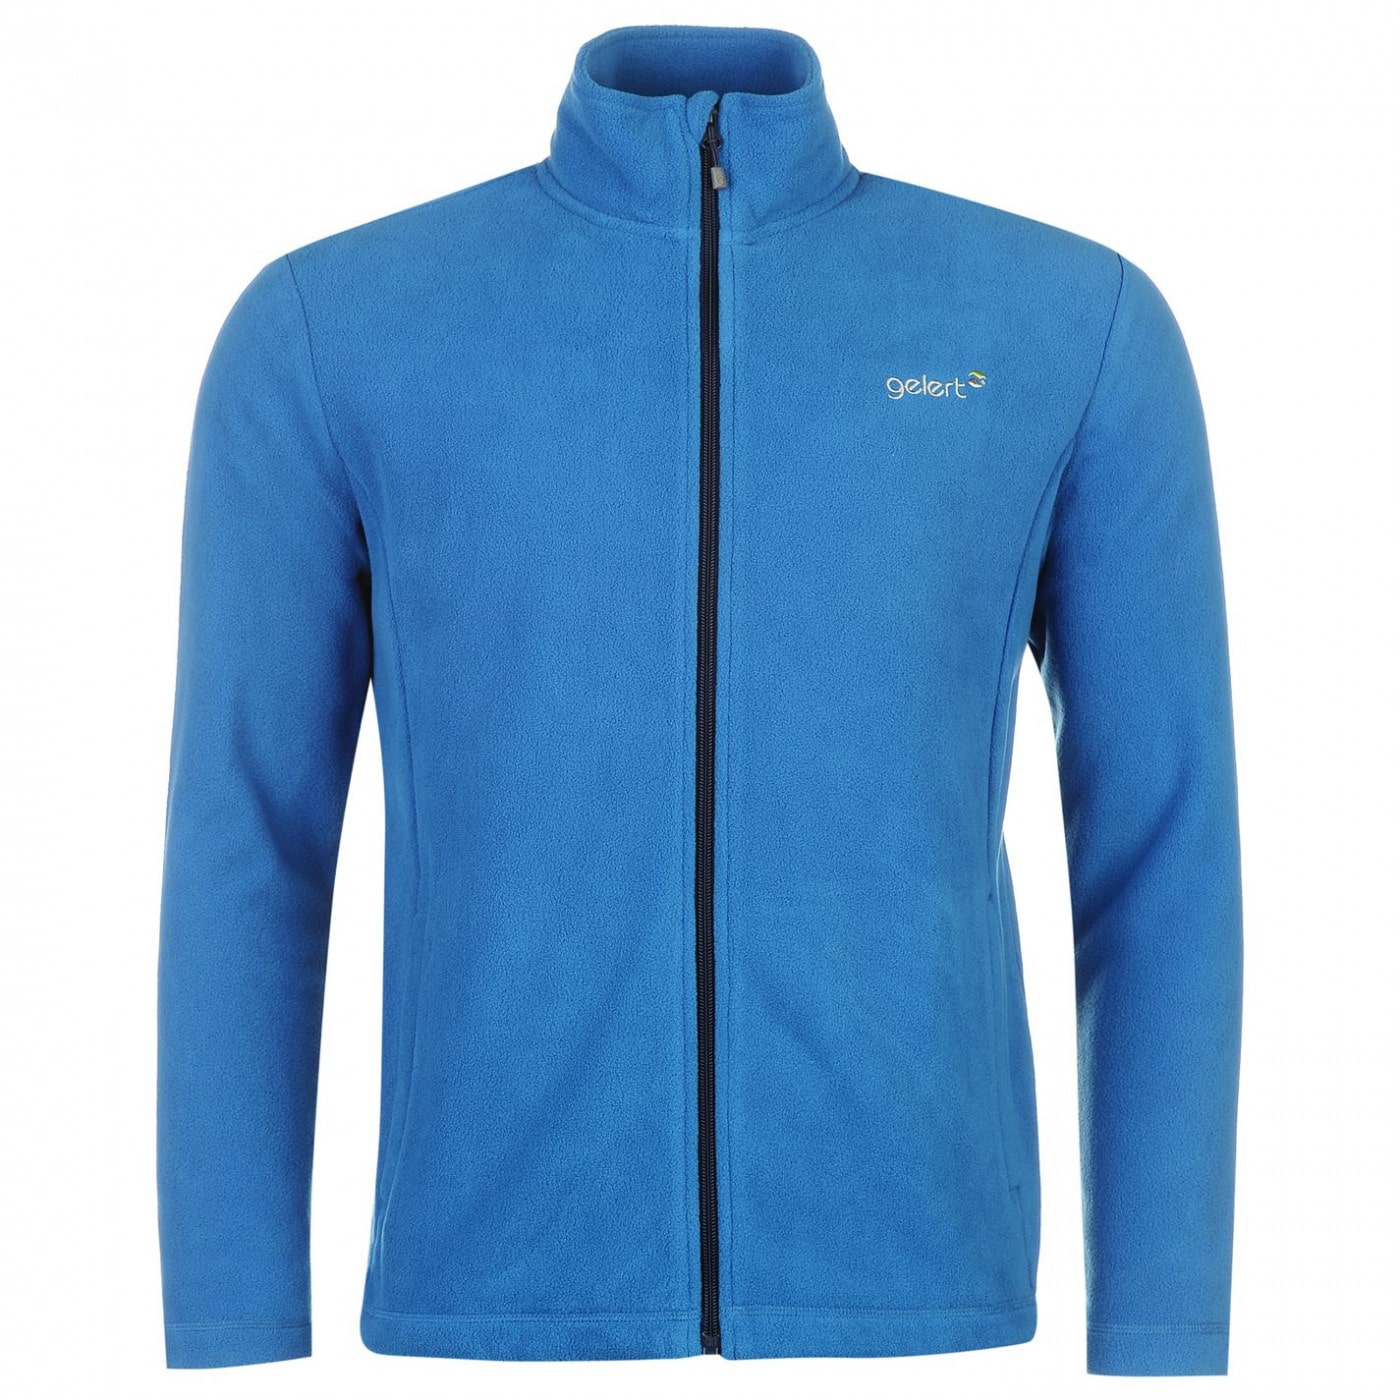 a46871b5c Gelert Ottawa Fleece Jacket Mens - FACTCOOL